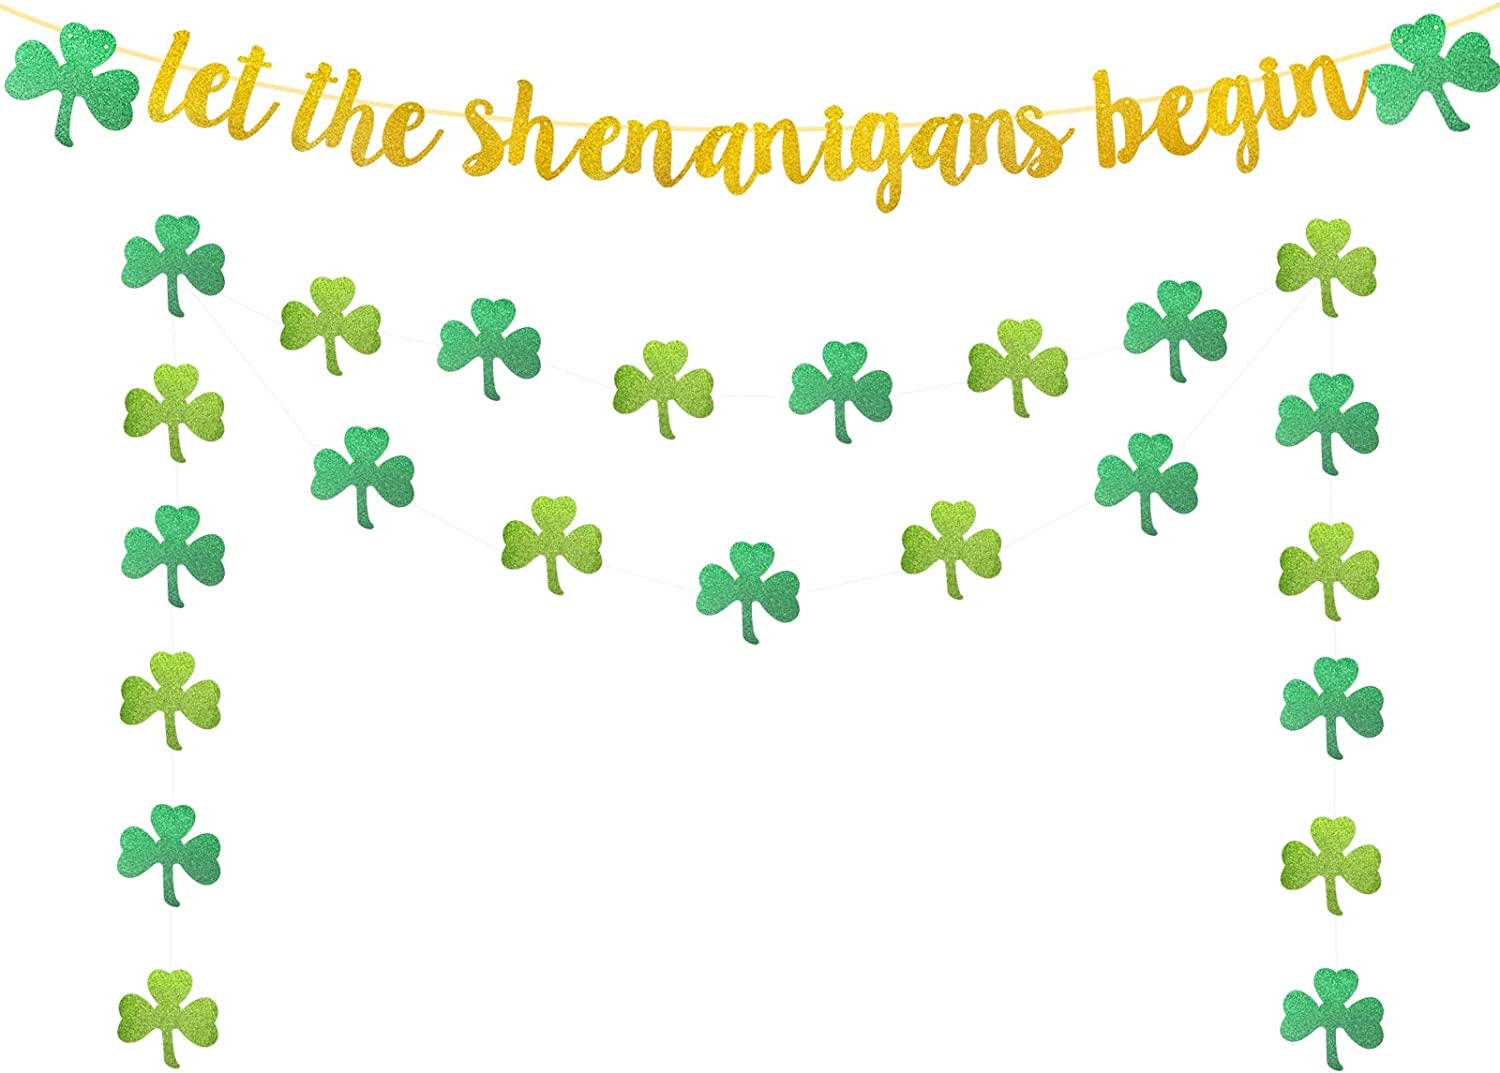 Weimaro Let The Shenanigans Begin Banner, Glittery St. Patrick's Day Decorations, Indoor Home St Patricks Day Sign, St Patty's Day Deocrations, Welcome Irish Party Decorations Supplies